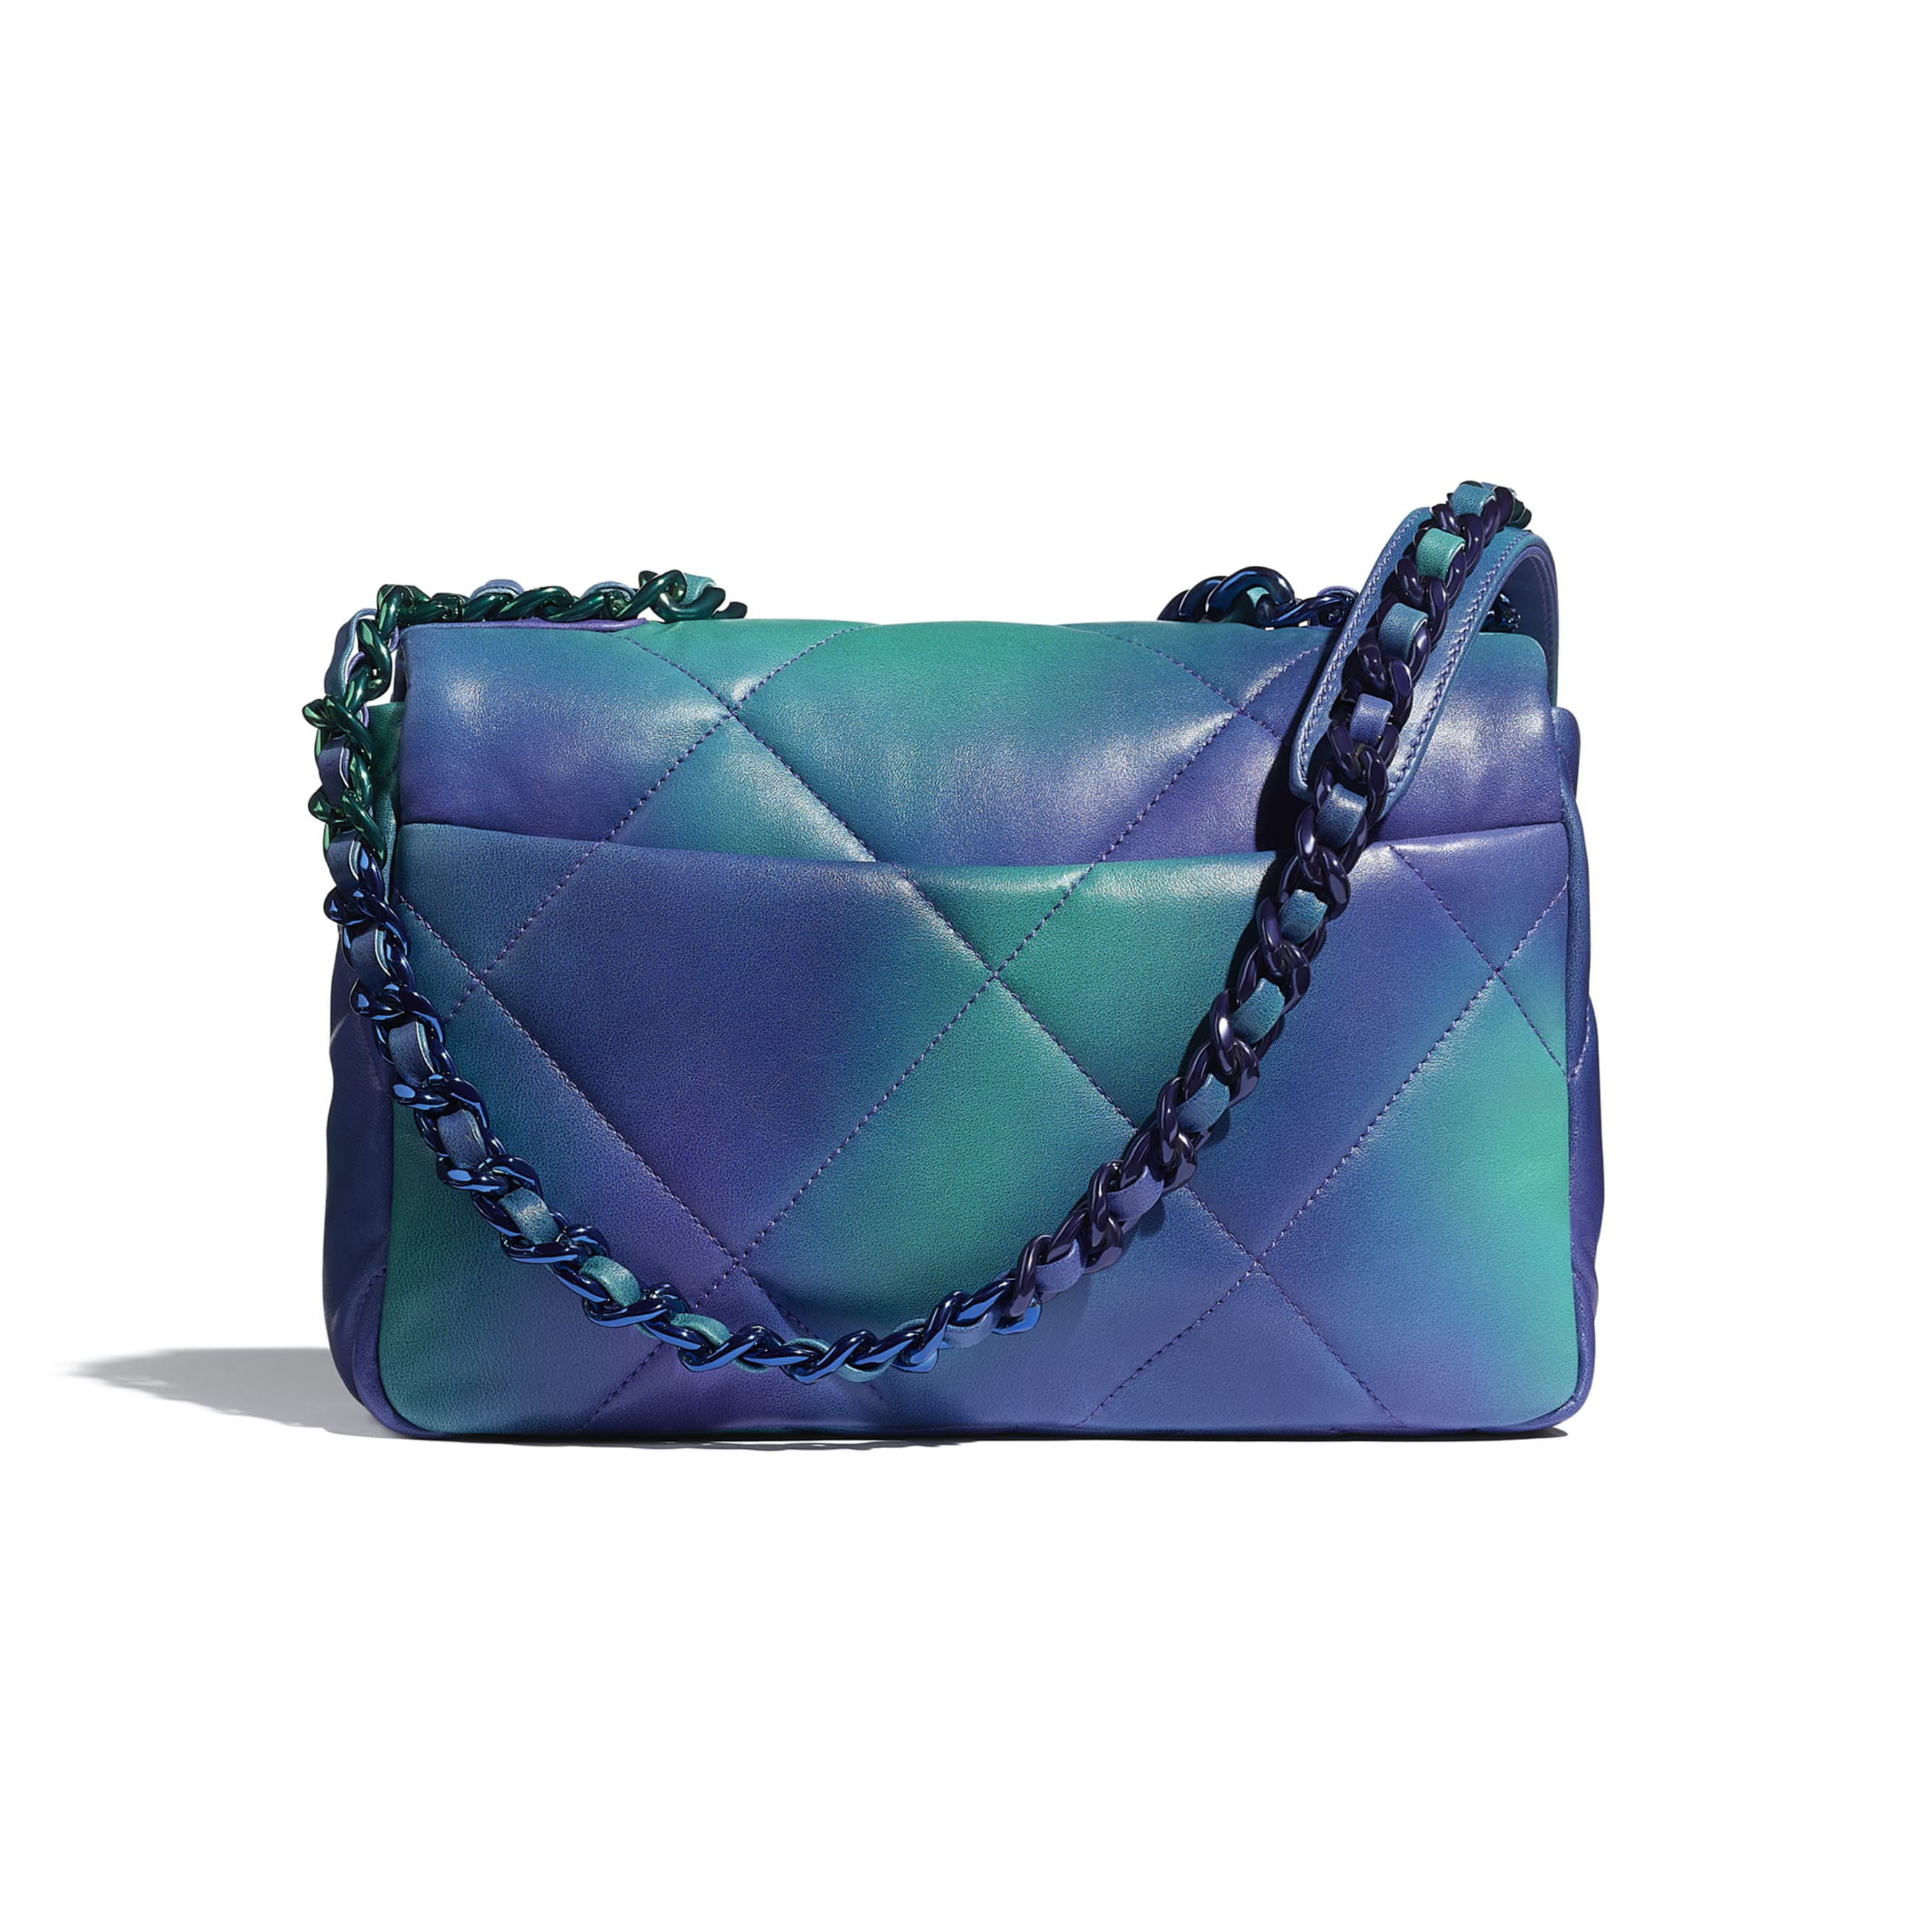 CHANEL 19 Flap Bag - Blue & Purple - Tie and Dye Calfskin & Lacquered Metal - CHANEL - Alternative view - see standard sized version